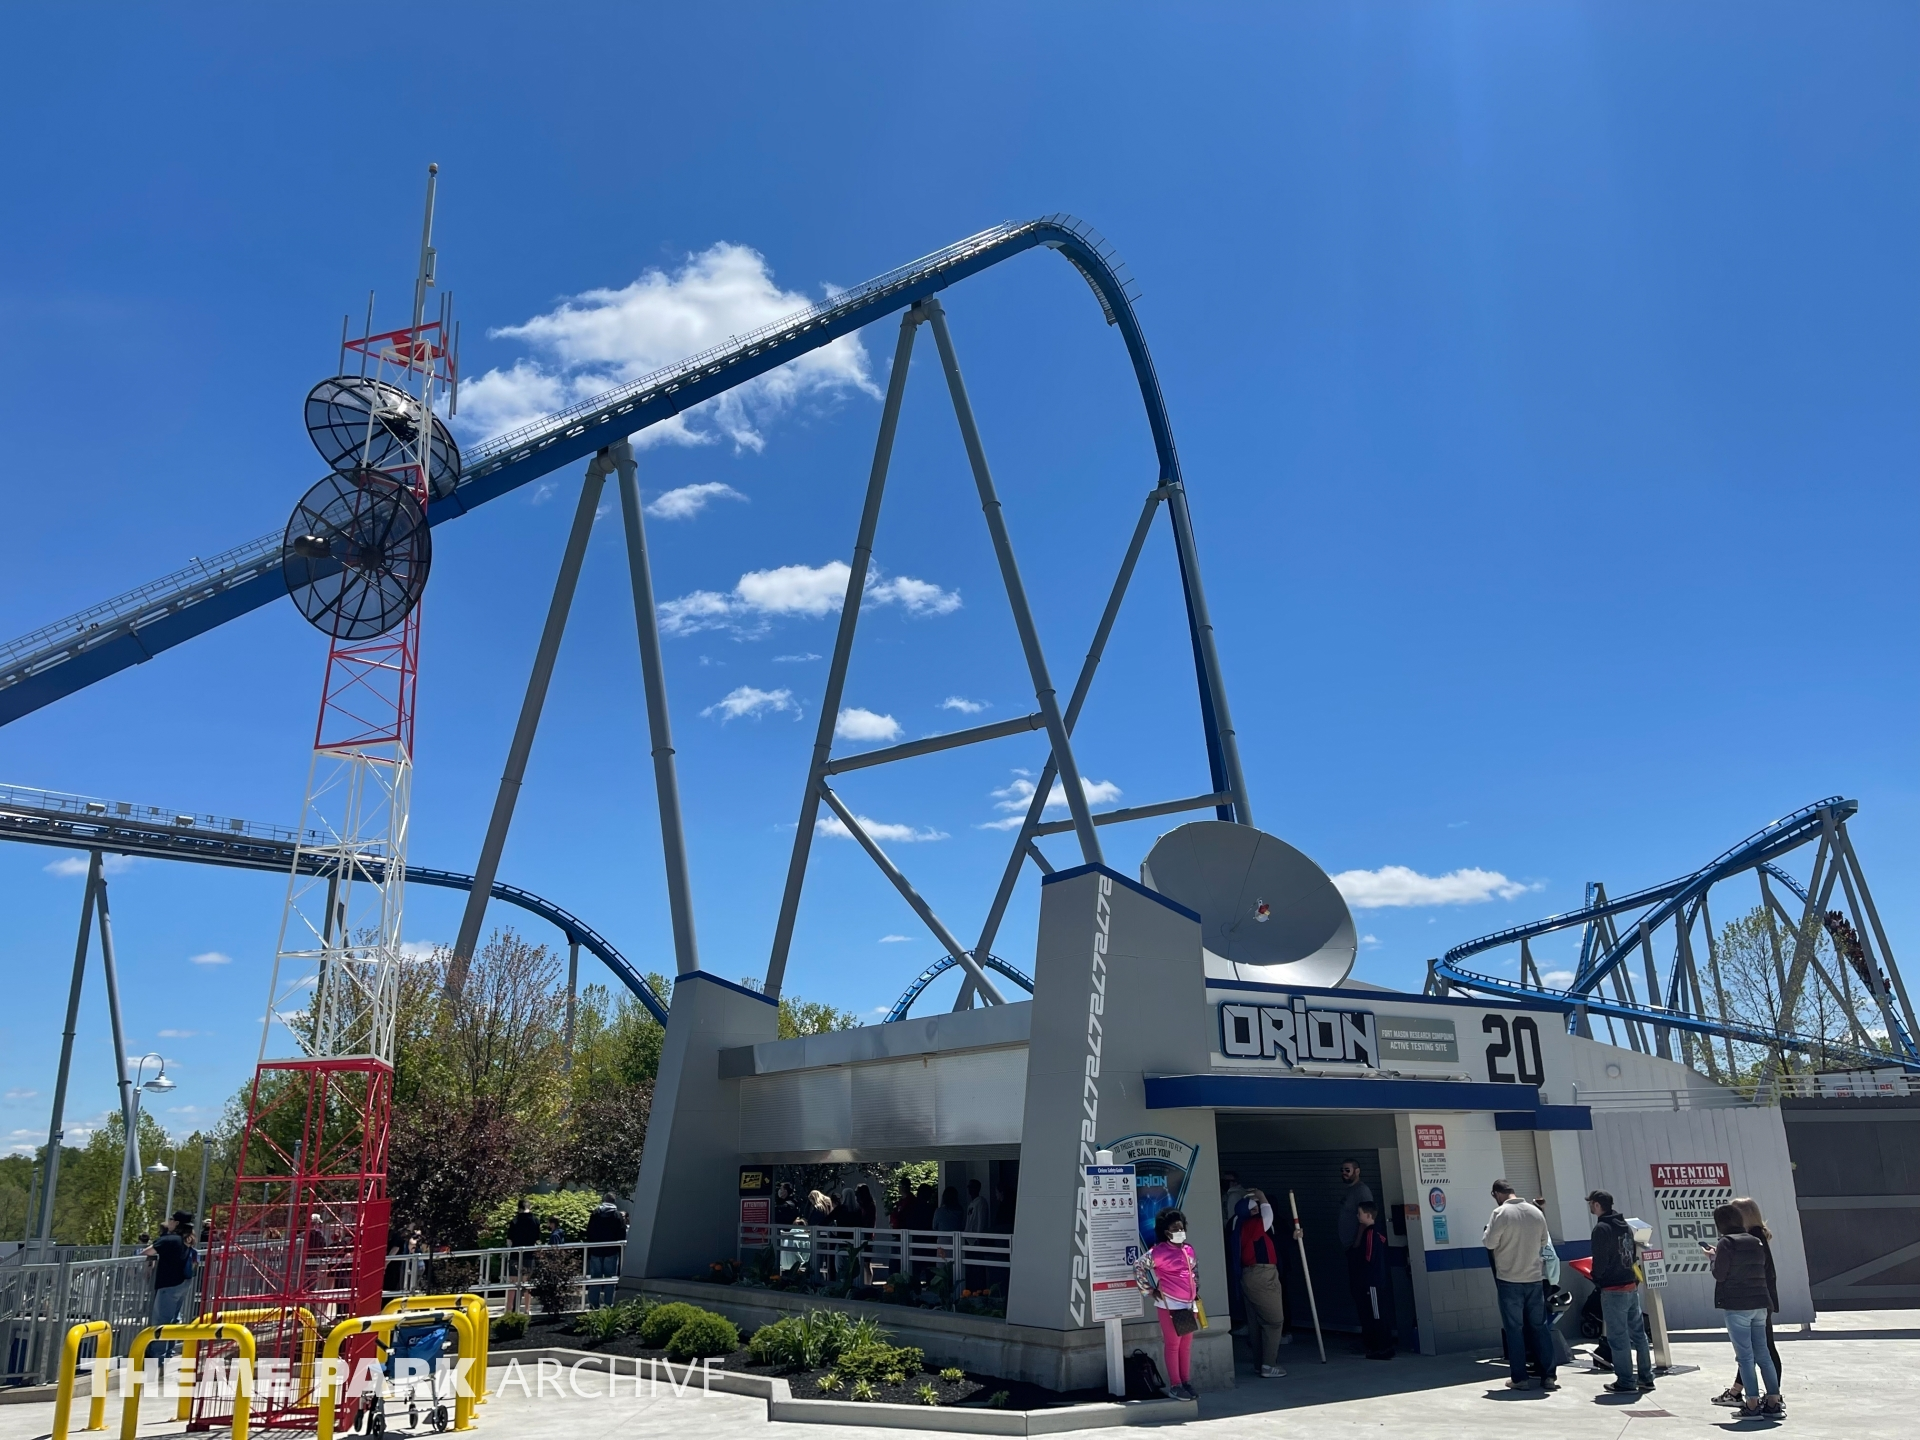 Orion at Kings Island